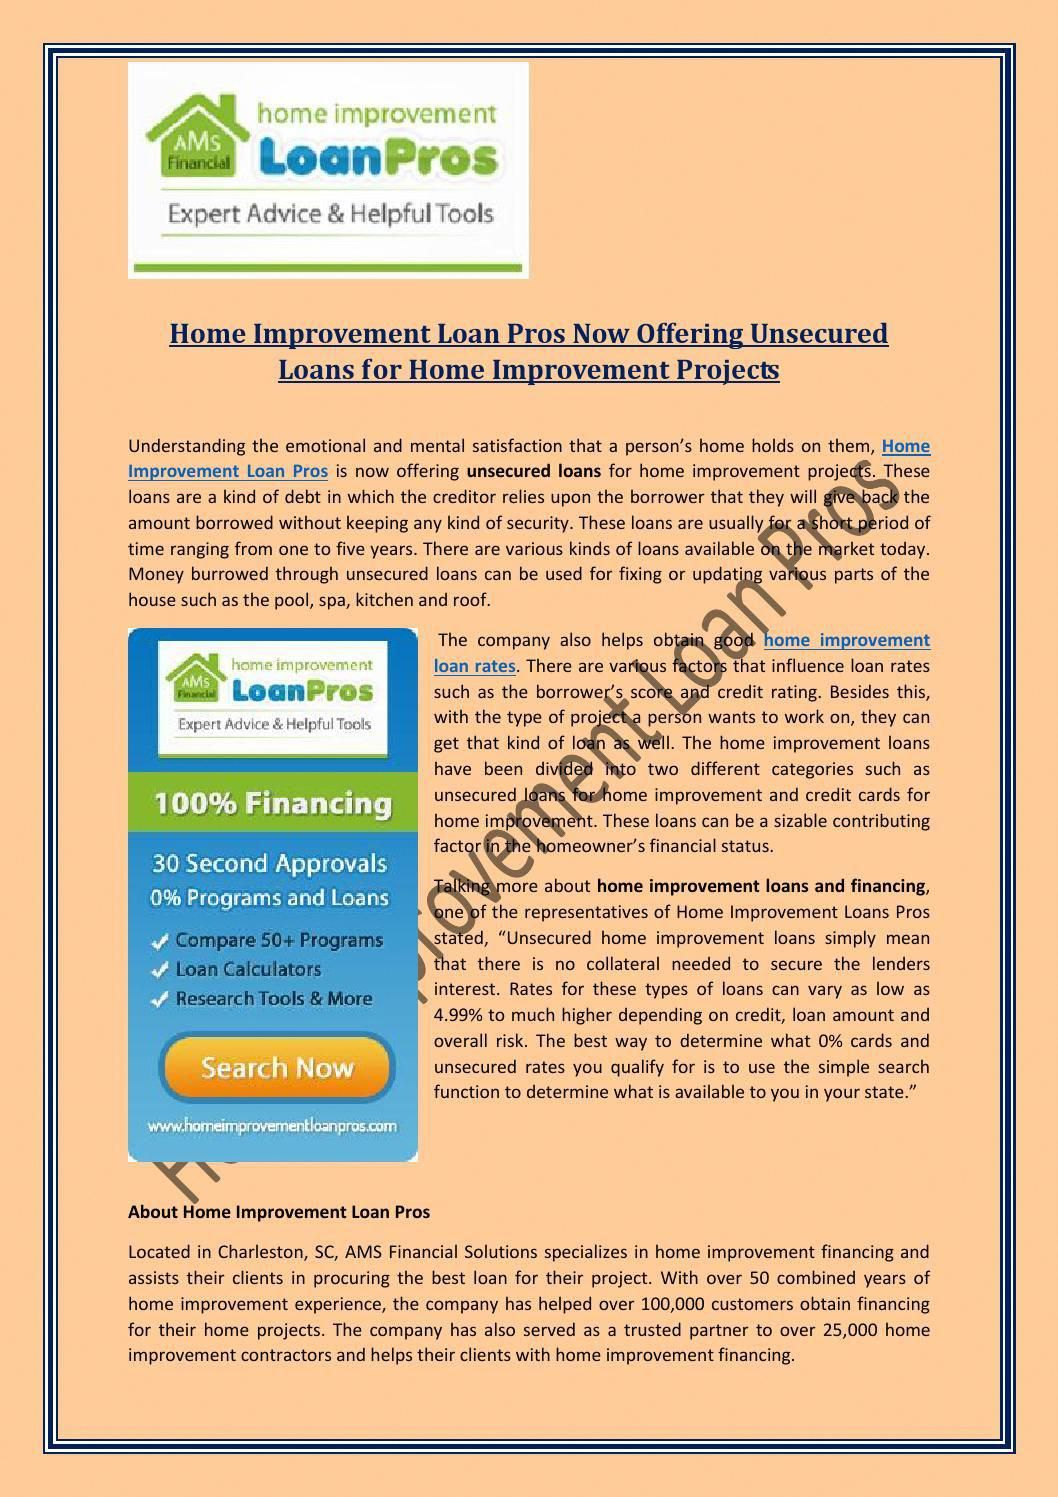 Home Improvement Loan Pros Now Offering Unsecured Loans For Home Improvement Projects Home Improvement Loans Home Improvement Projects Home Improvement